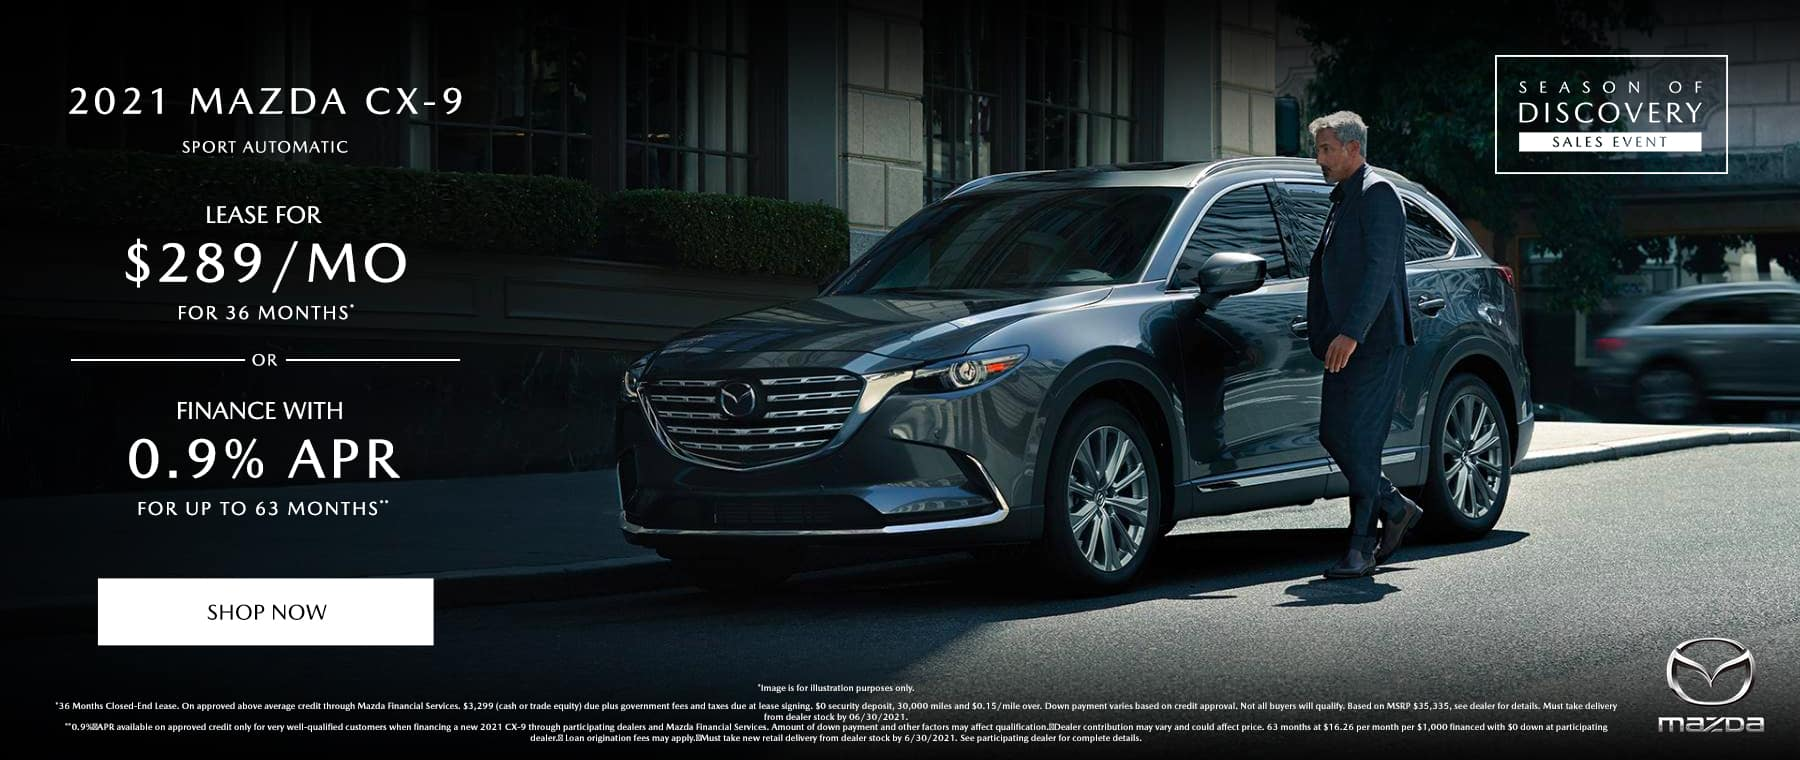 2021 MAZDA CX-9 SPORT AUTOMATIC (MODEL#CX9SP2A) $289/month @ 36 months*, 0.9% APR for 63 Months**